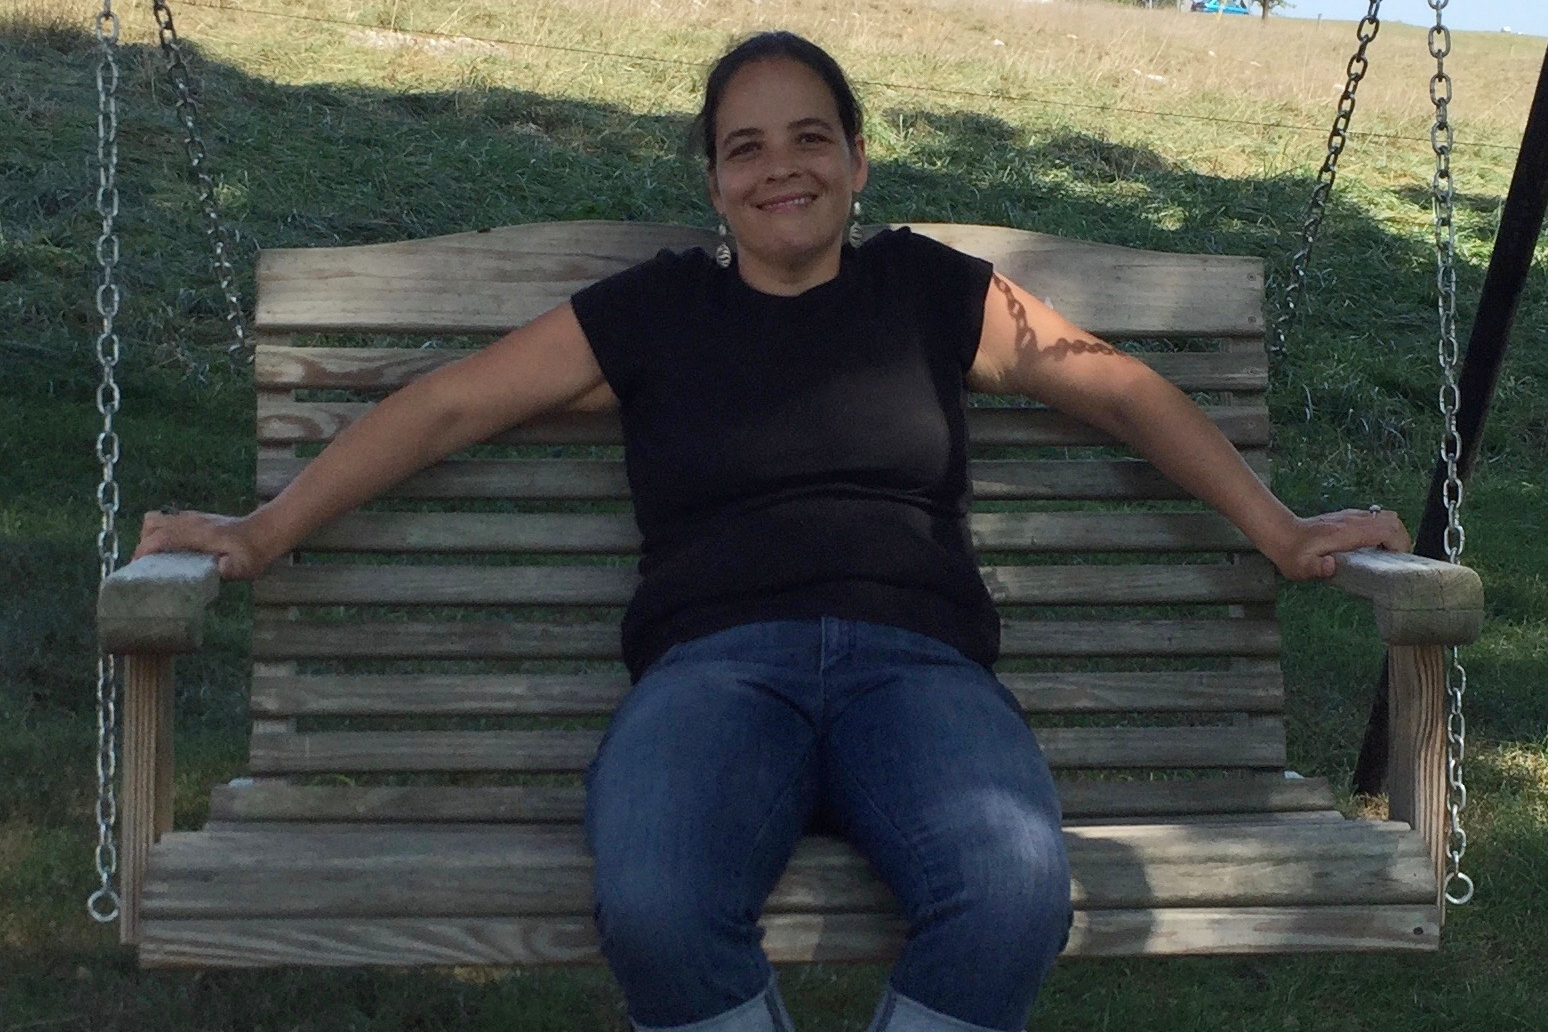 Bio:Melanie Avila is mother to three daughters.She and her husband and daughters have served in cross-cultural missions alongside the poor for the past 11 years with InnerCHANGE.Currently she resides in Lancaster, PA.   Click here to read more of Melanie's writing.